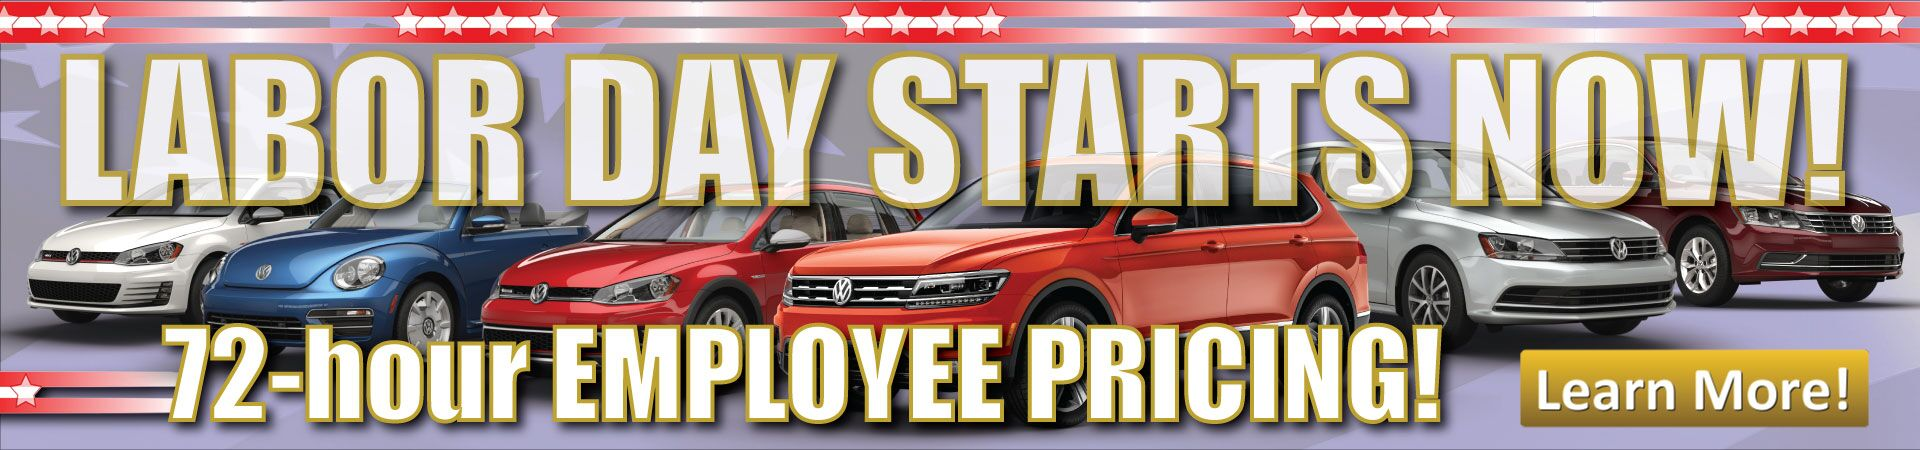 Labor Day starts now at Douglas Volkswagen!